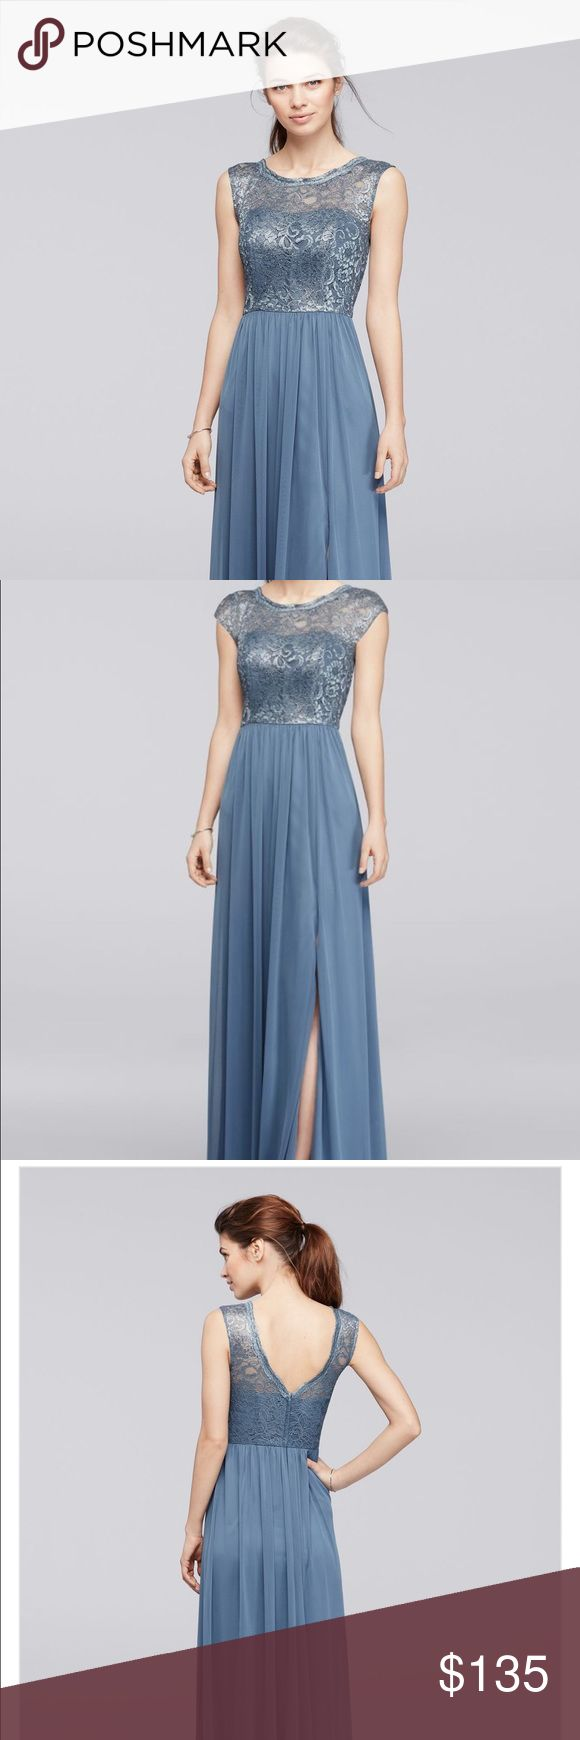 Davids Bridal Bridesmaid Dress F19328M Worn once and dry-cleaned. Never altered in anyway it's a beautiful fitting dress and the perfect steel blue metallic color with lace detailing on top. David's Bridal Dresses